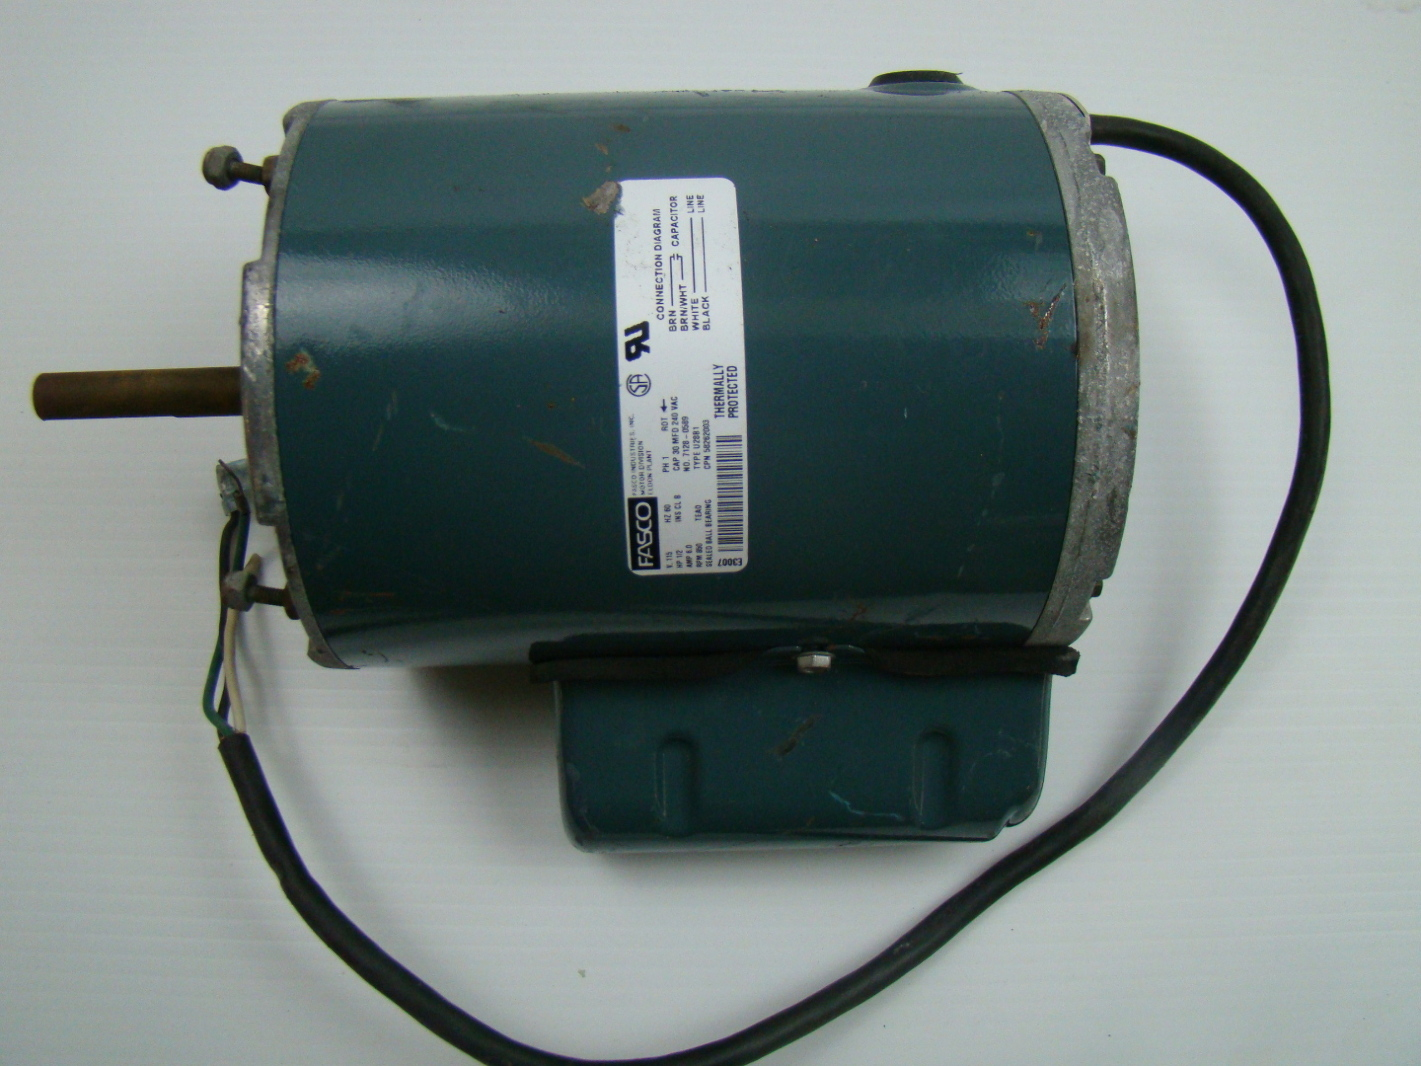 Fasco 1 2 Hp Electric Motor 115v 7128 0589 Ebay